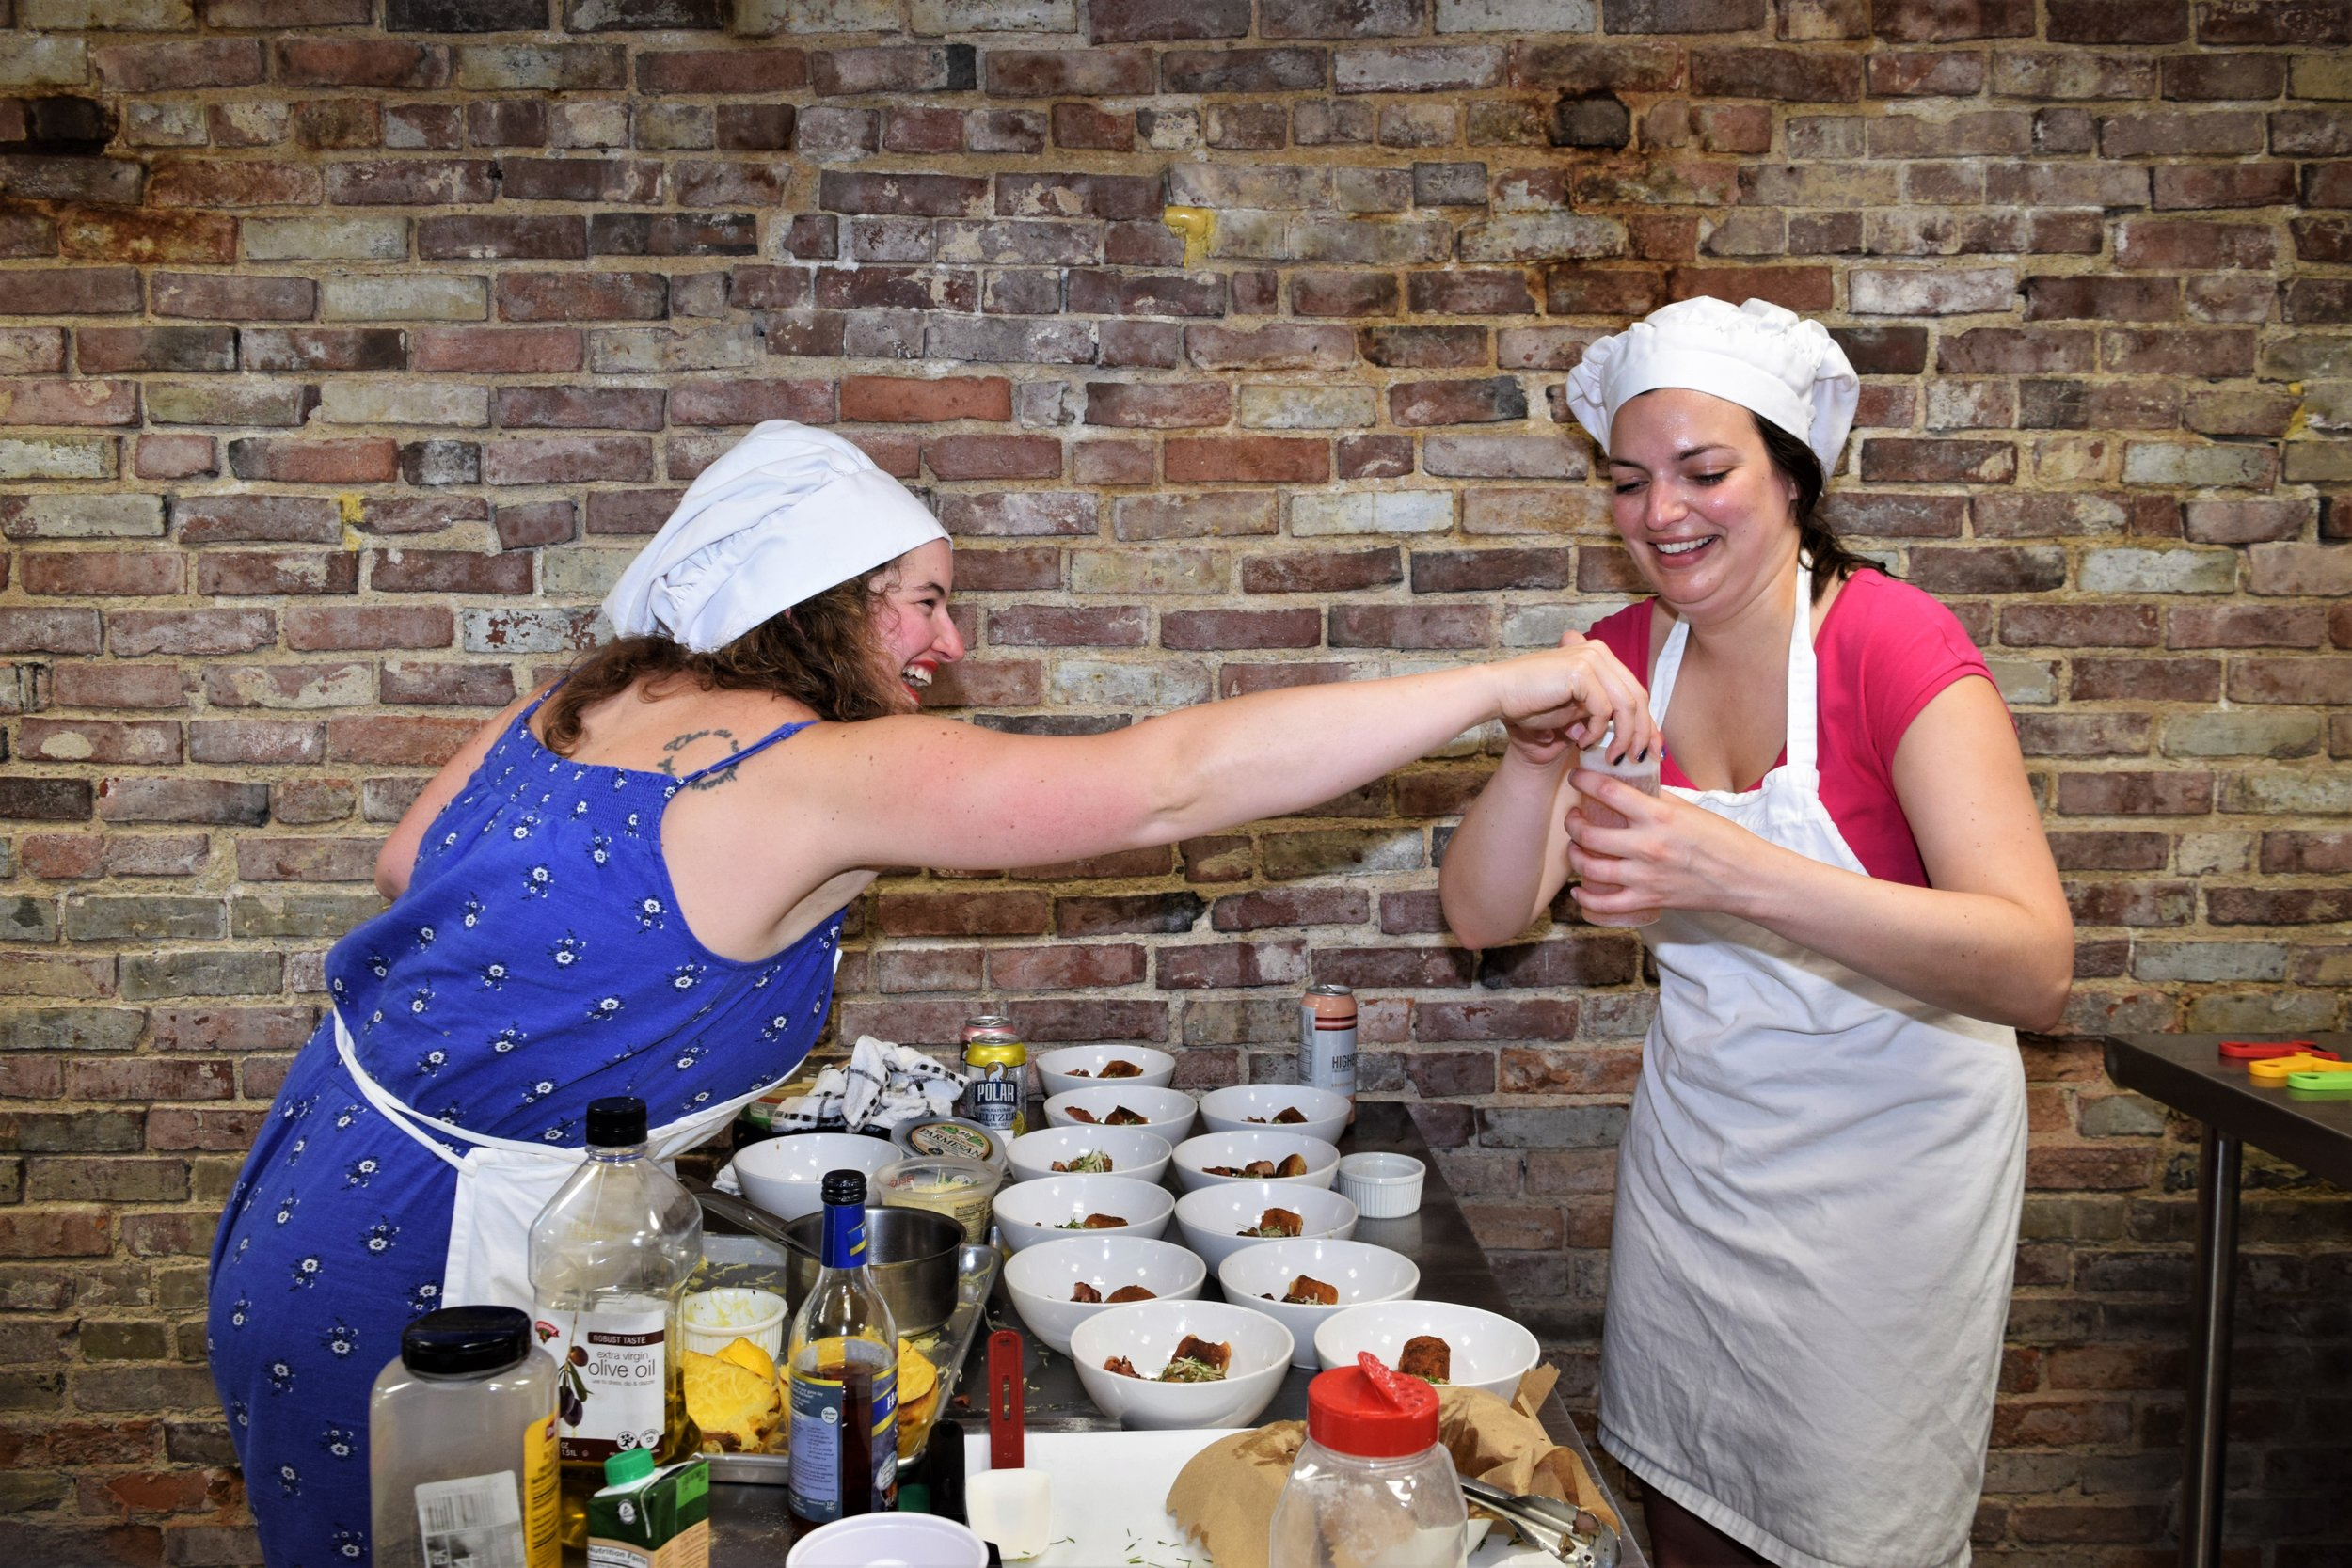 Bachelorette cooking competition teammates plating sauce together